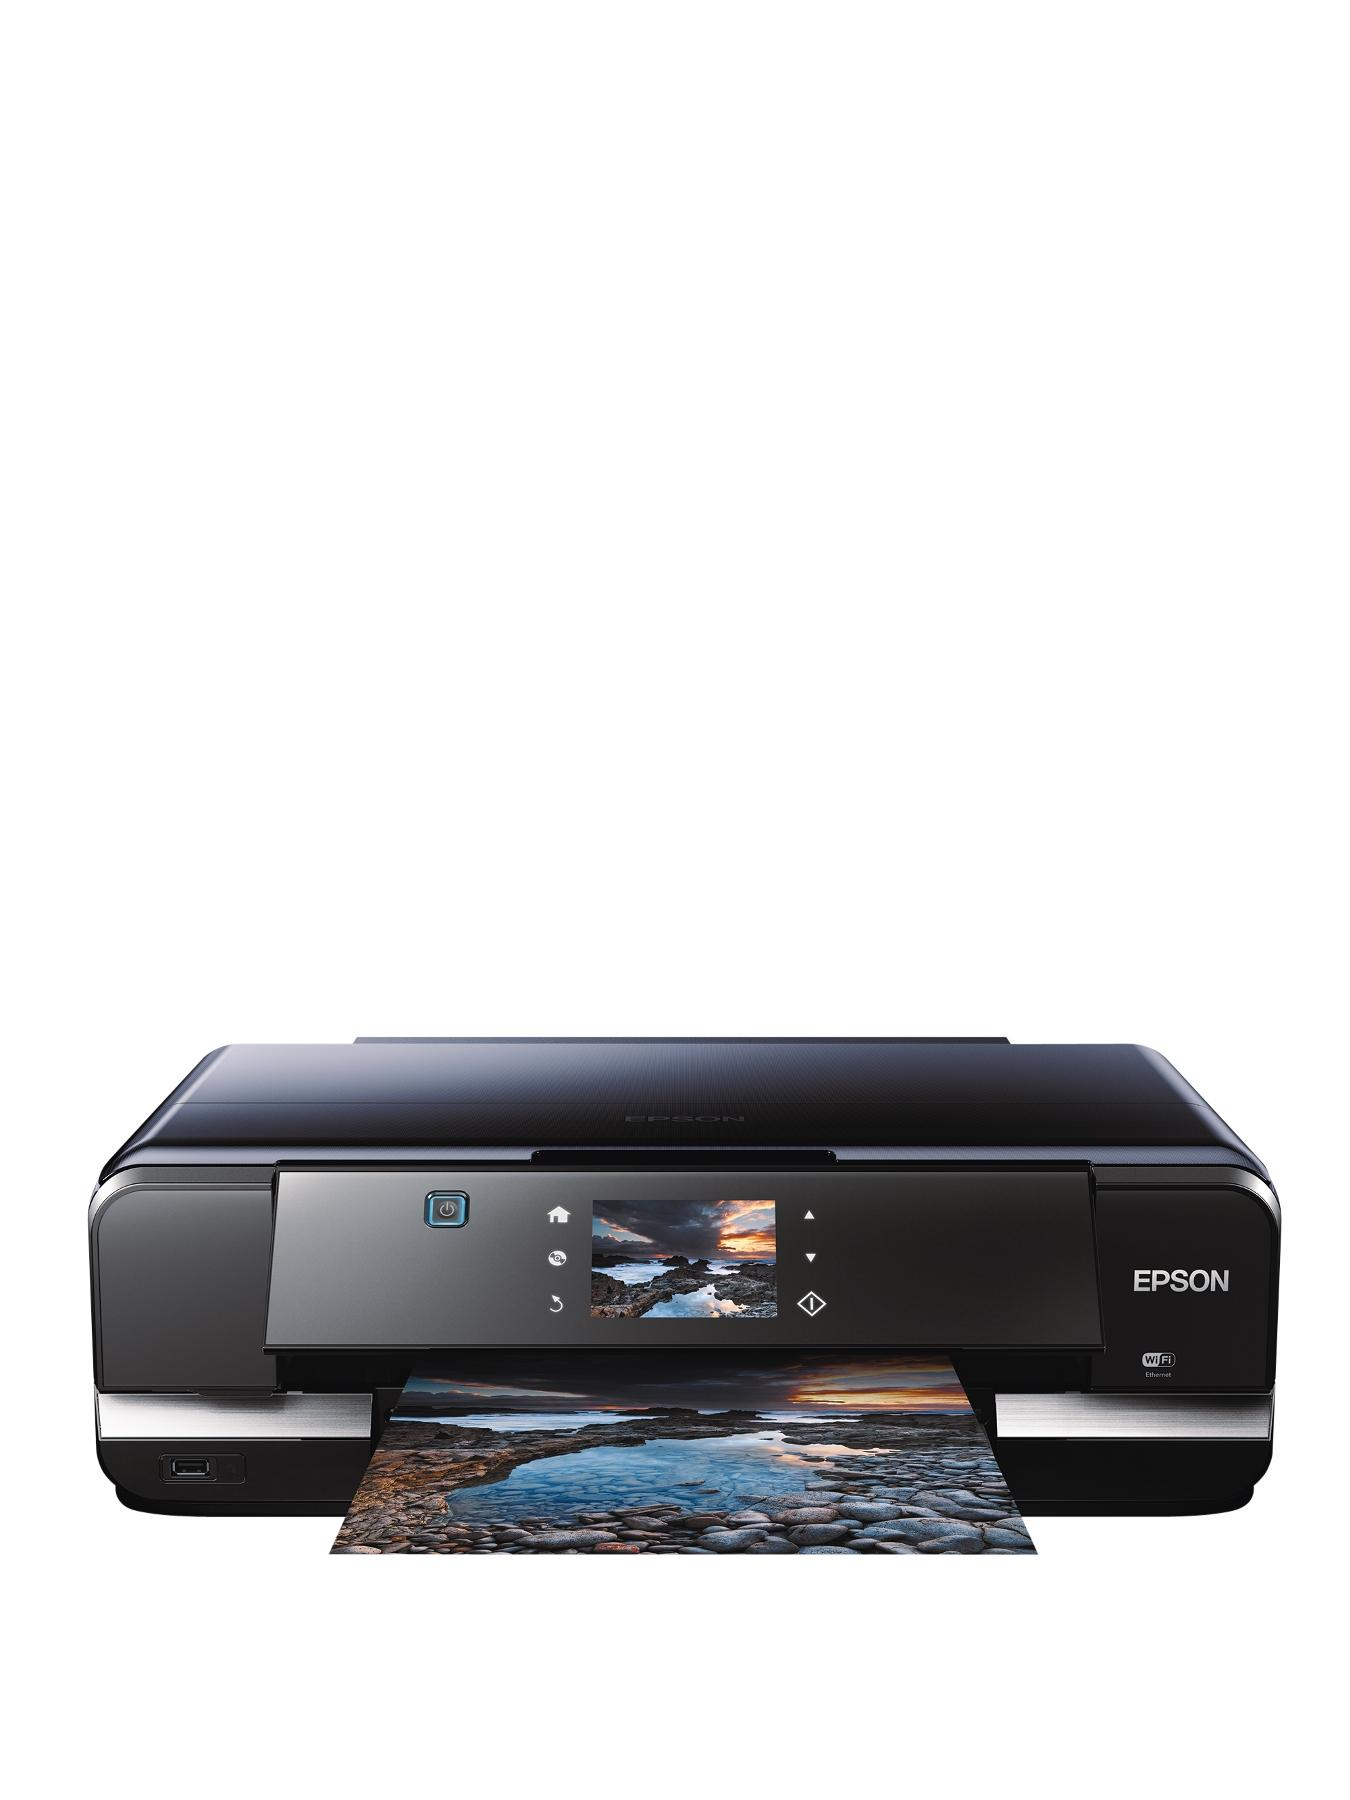 XP-950 Expression Photo All-In-One A3 Printer